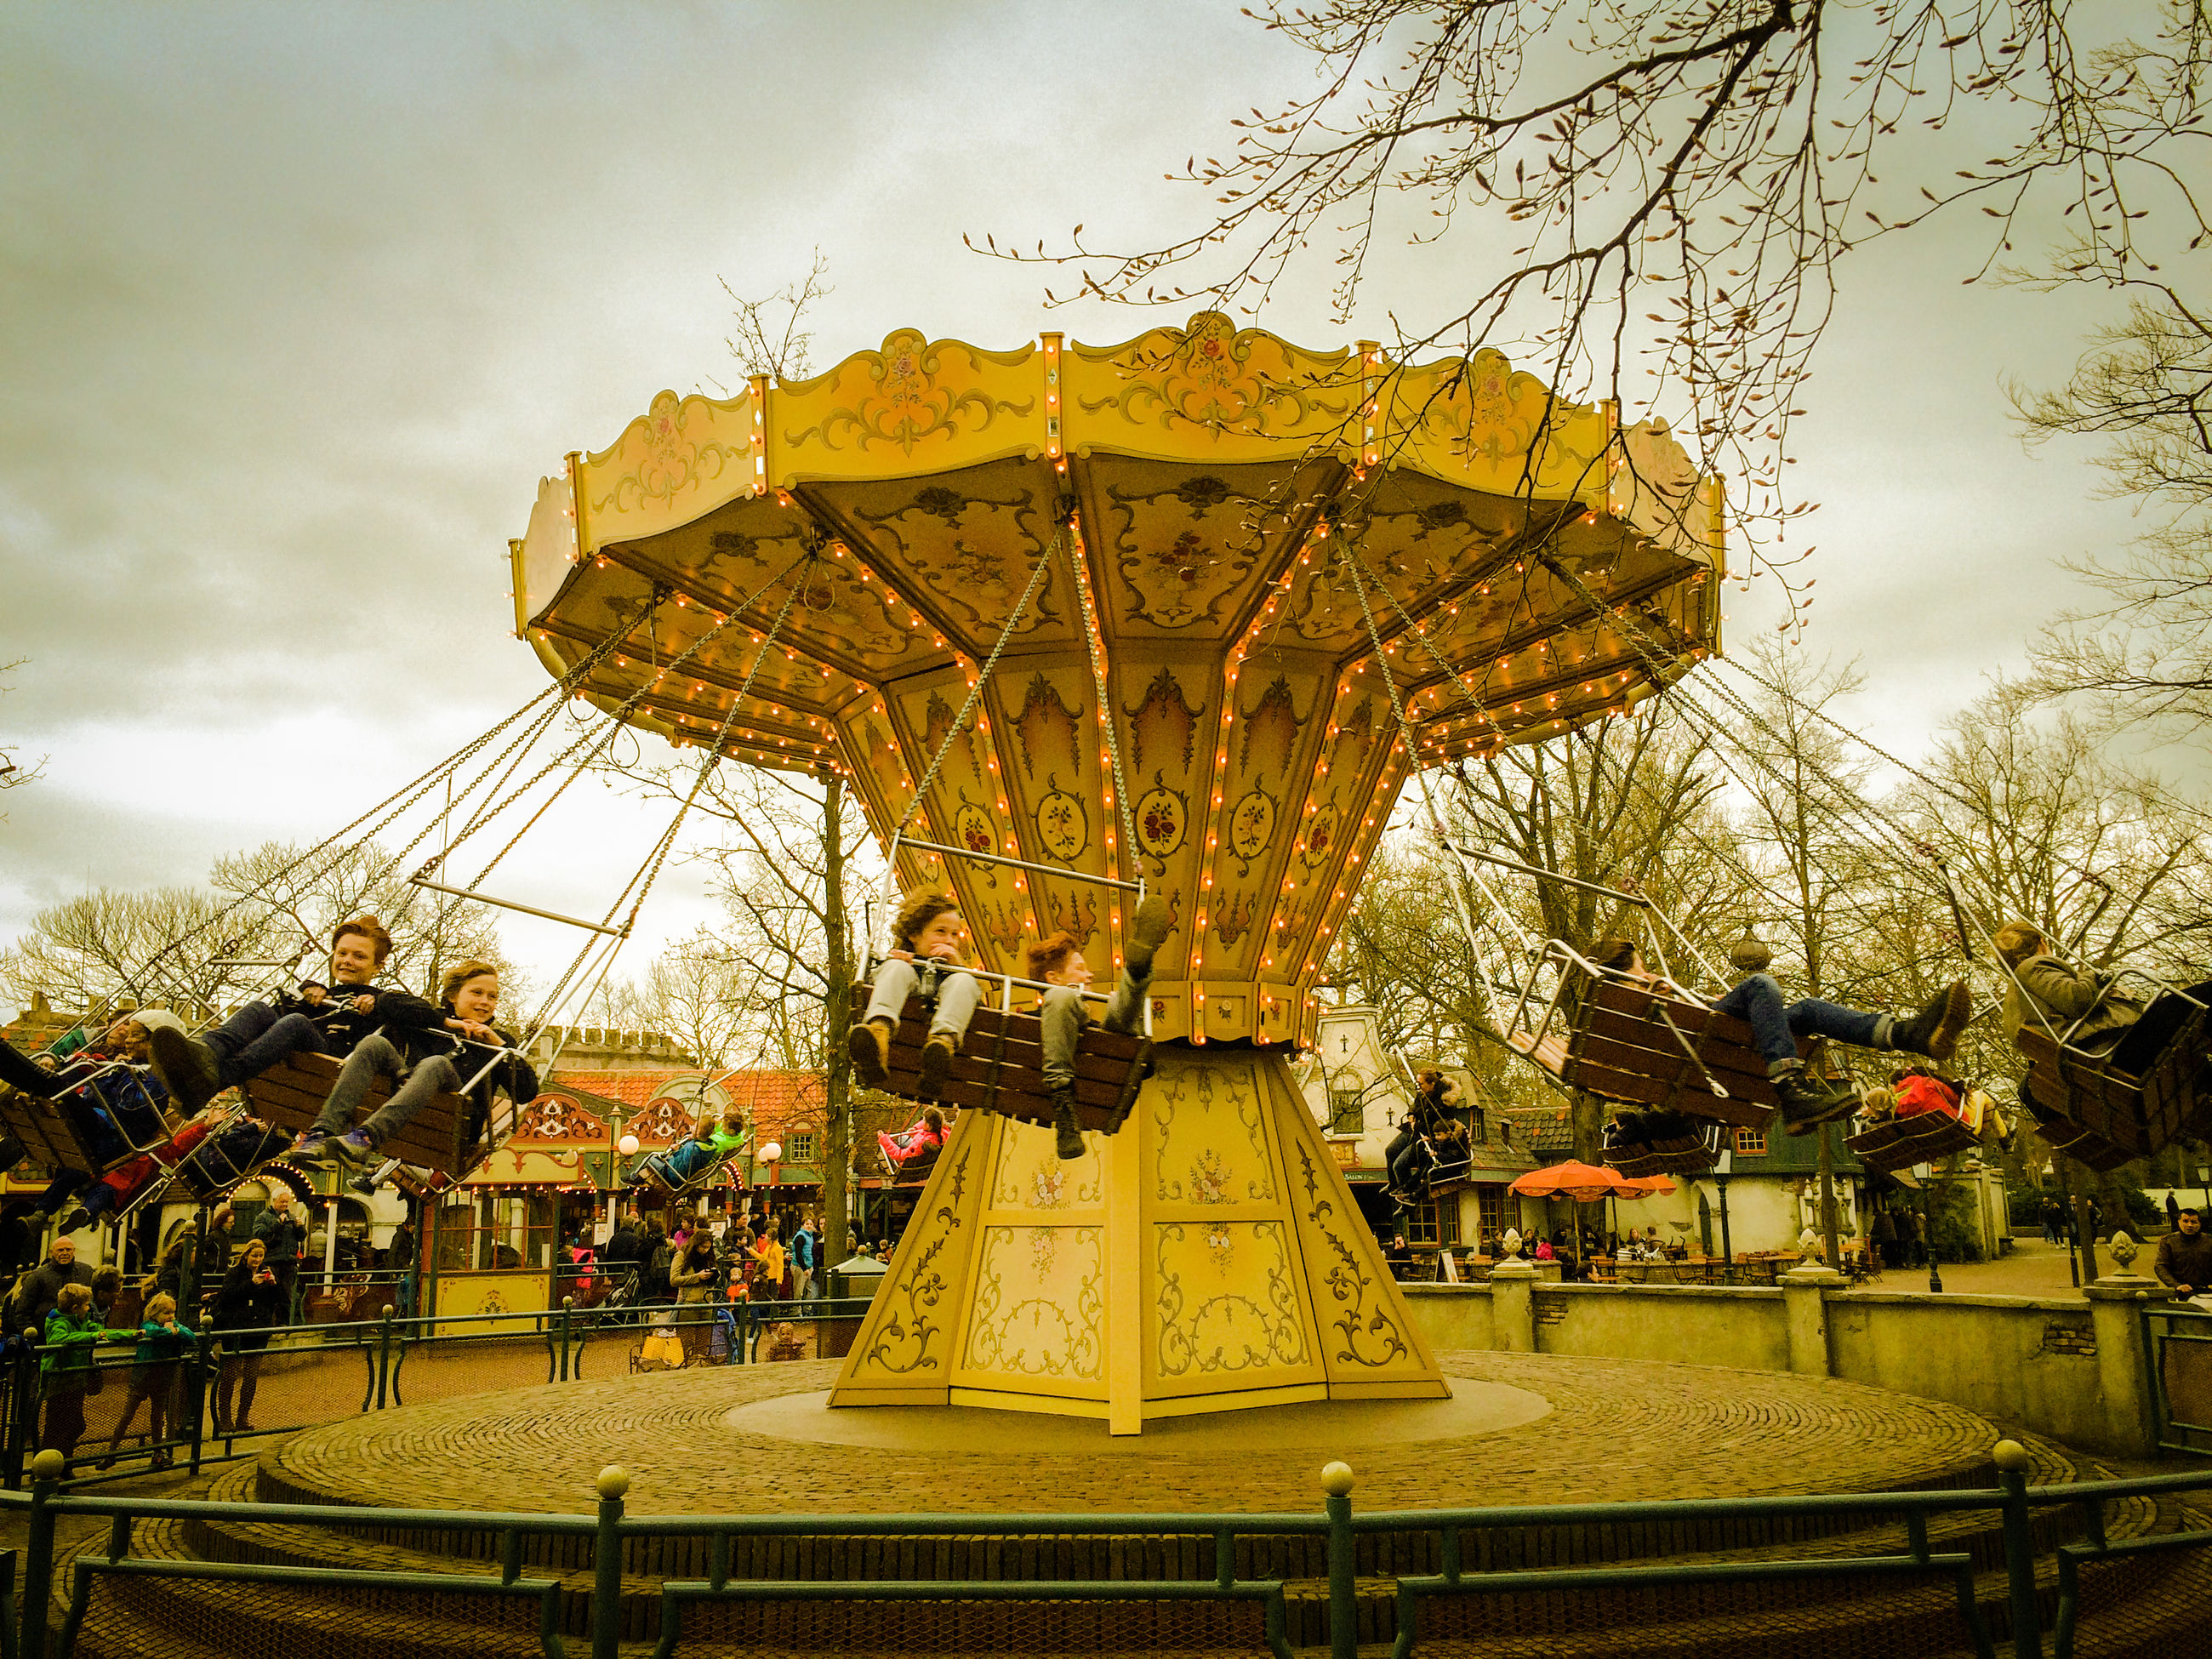 amusement park, arts culture and entertainment, amusement park ride, fairground ride, carousel, leisure activity, enjoyment, sky, cloud - sky, merry-go-round, large group of people, fun, carousel horses, outdoors, day, real people, tree, people